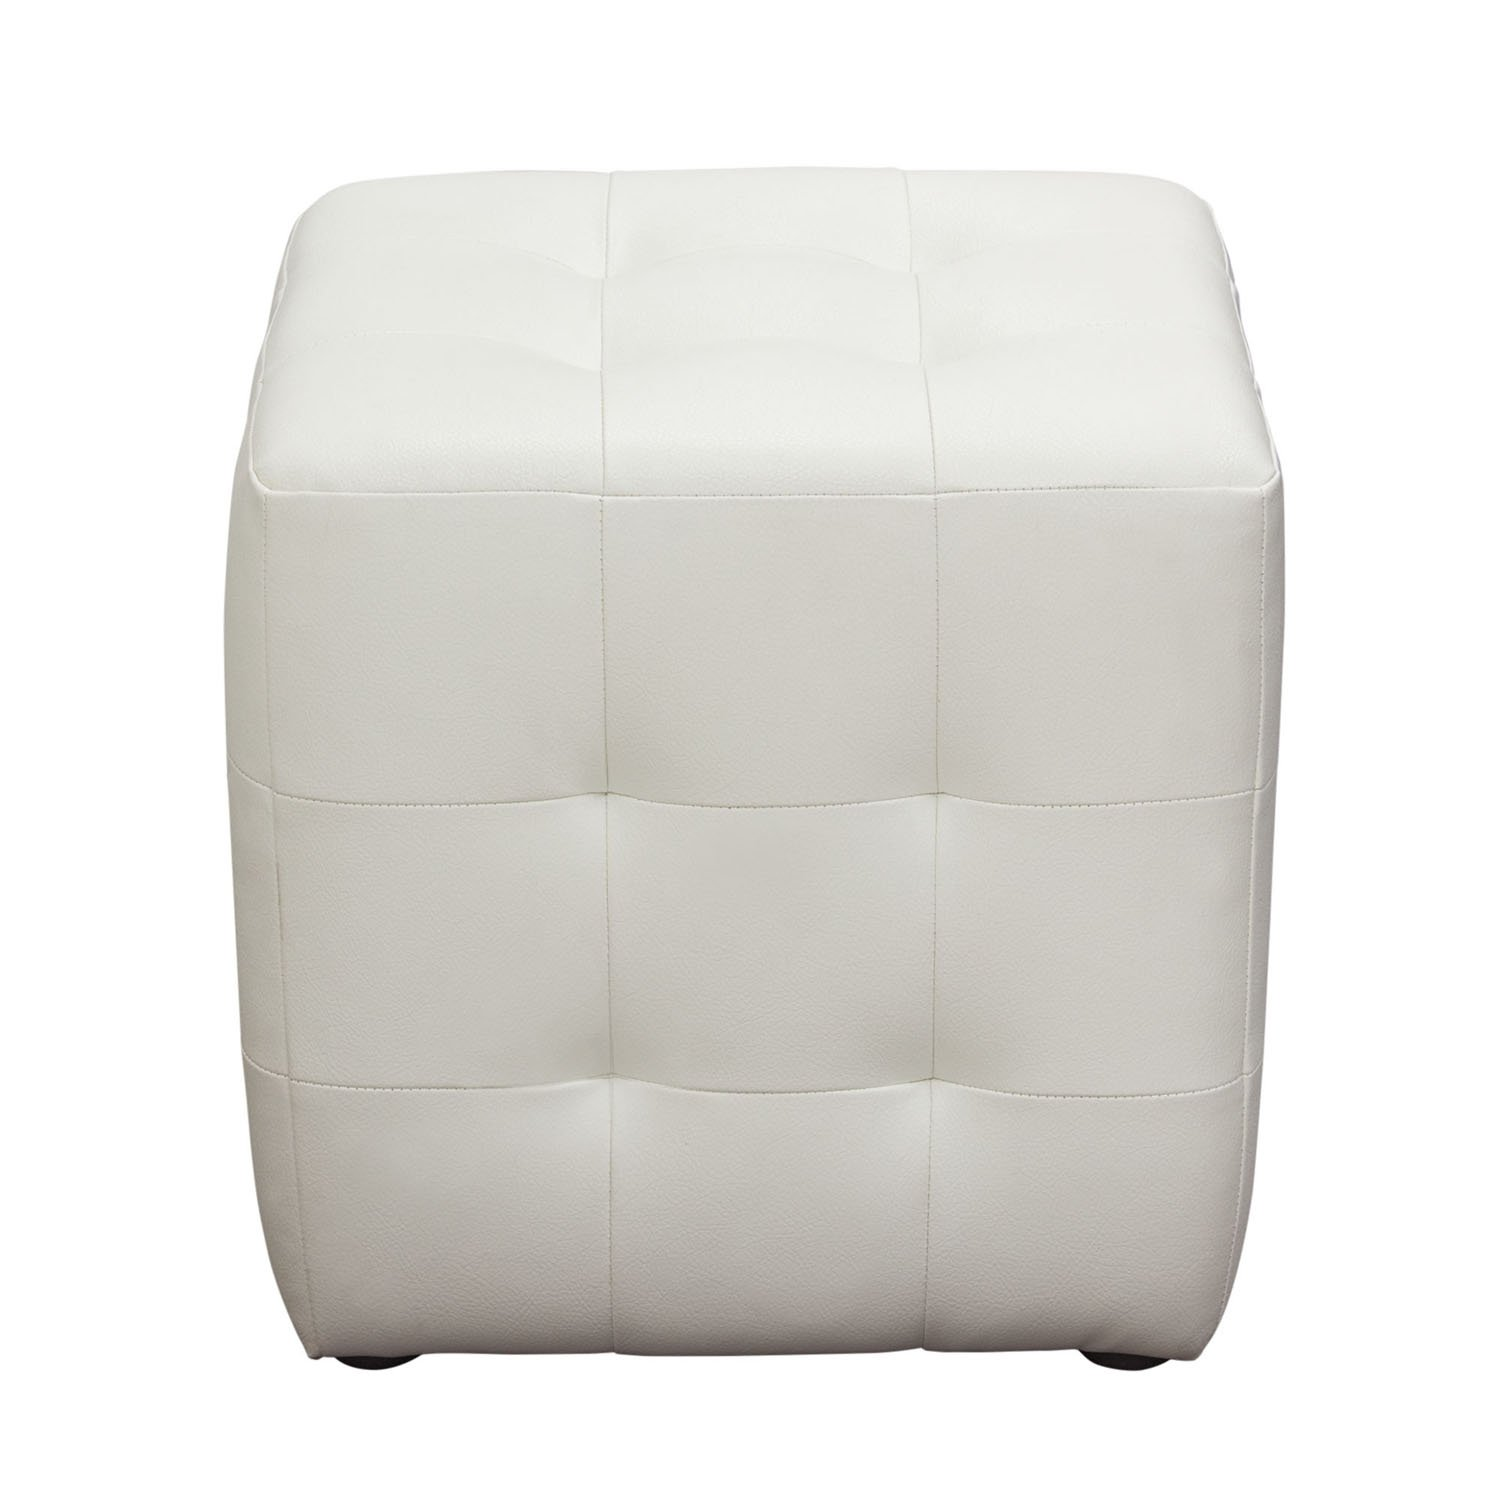 Awesome Diamond Sofa Zen Collection Bonded Leather Tufted Cube Accent Ottoman White Creativecarmelina Interior Chair Design Creativecarmelinacom